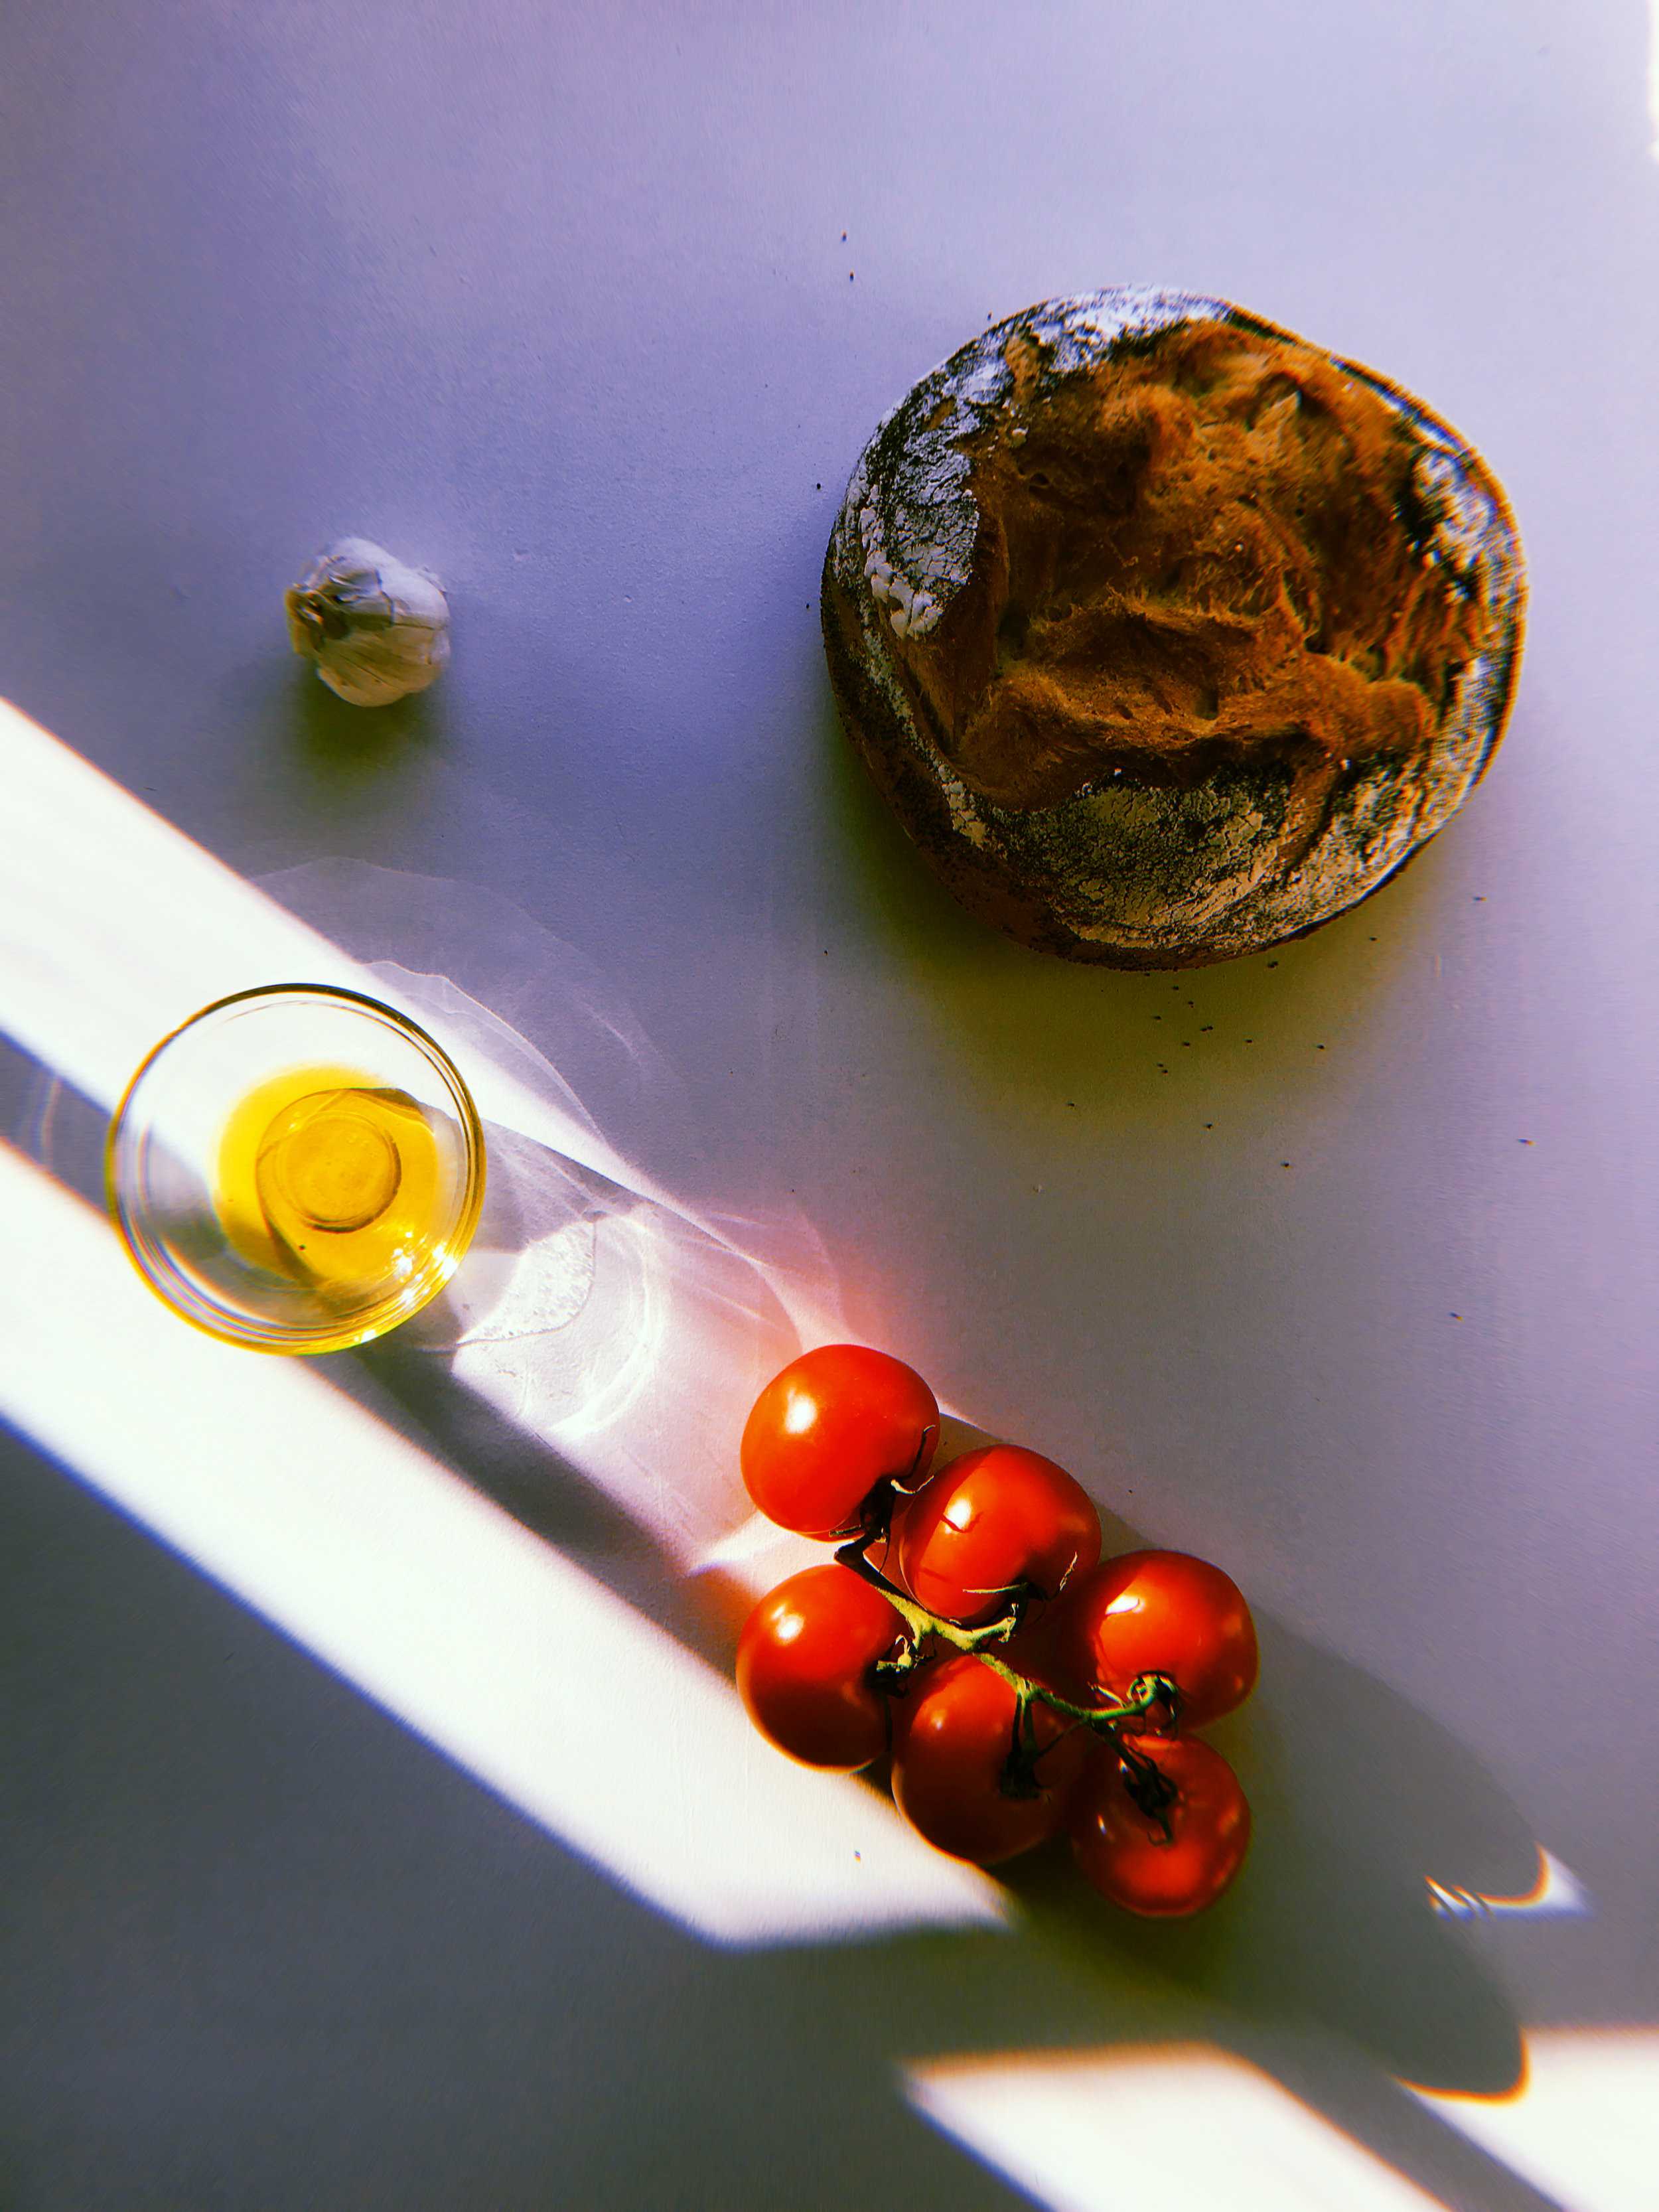 Tomato-bread-ingredients.jpg